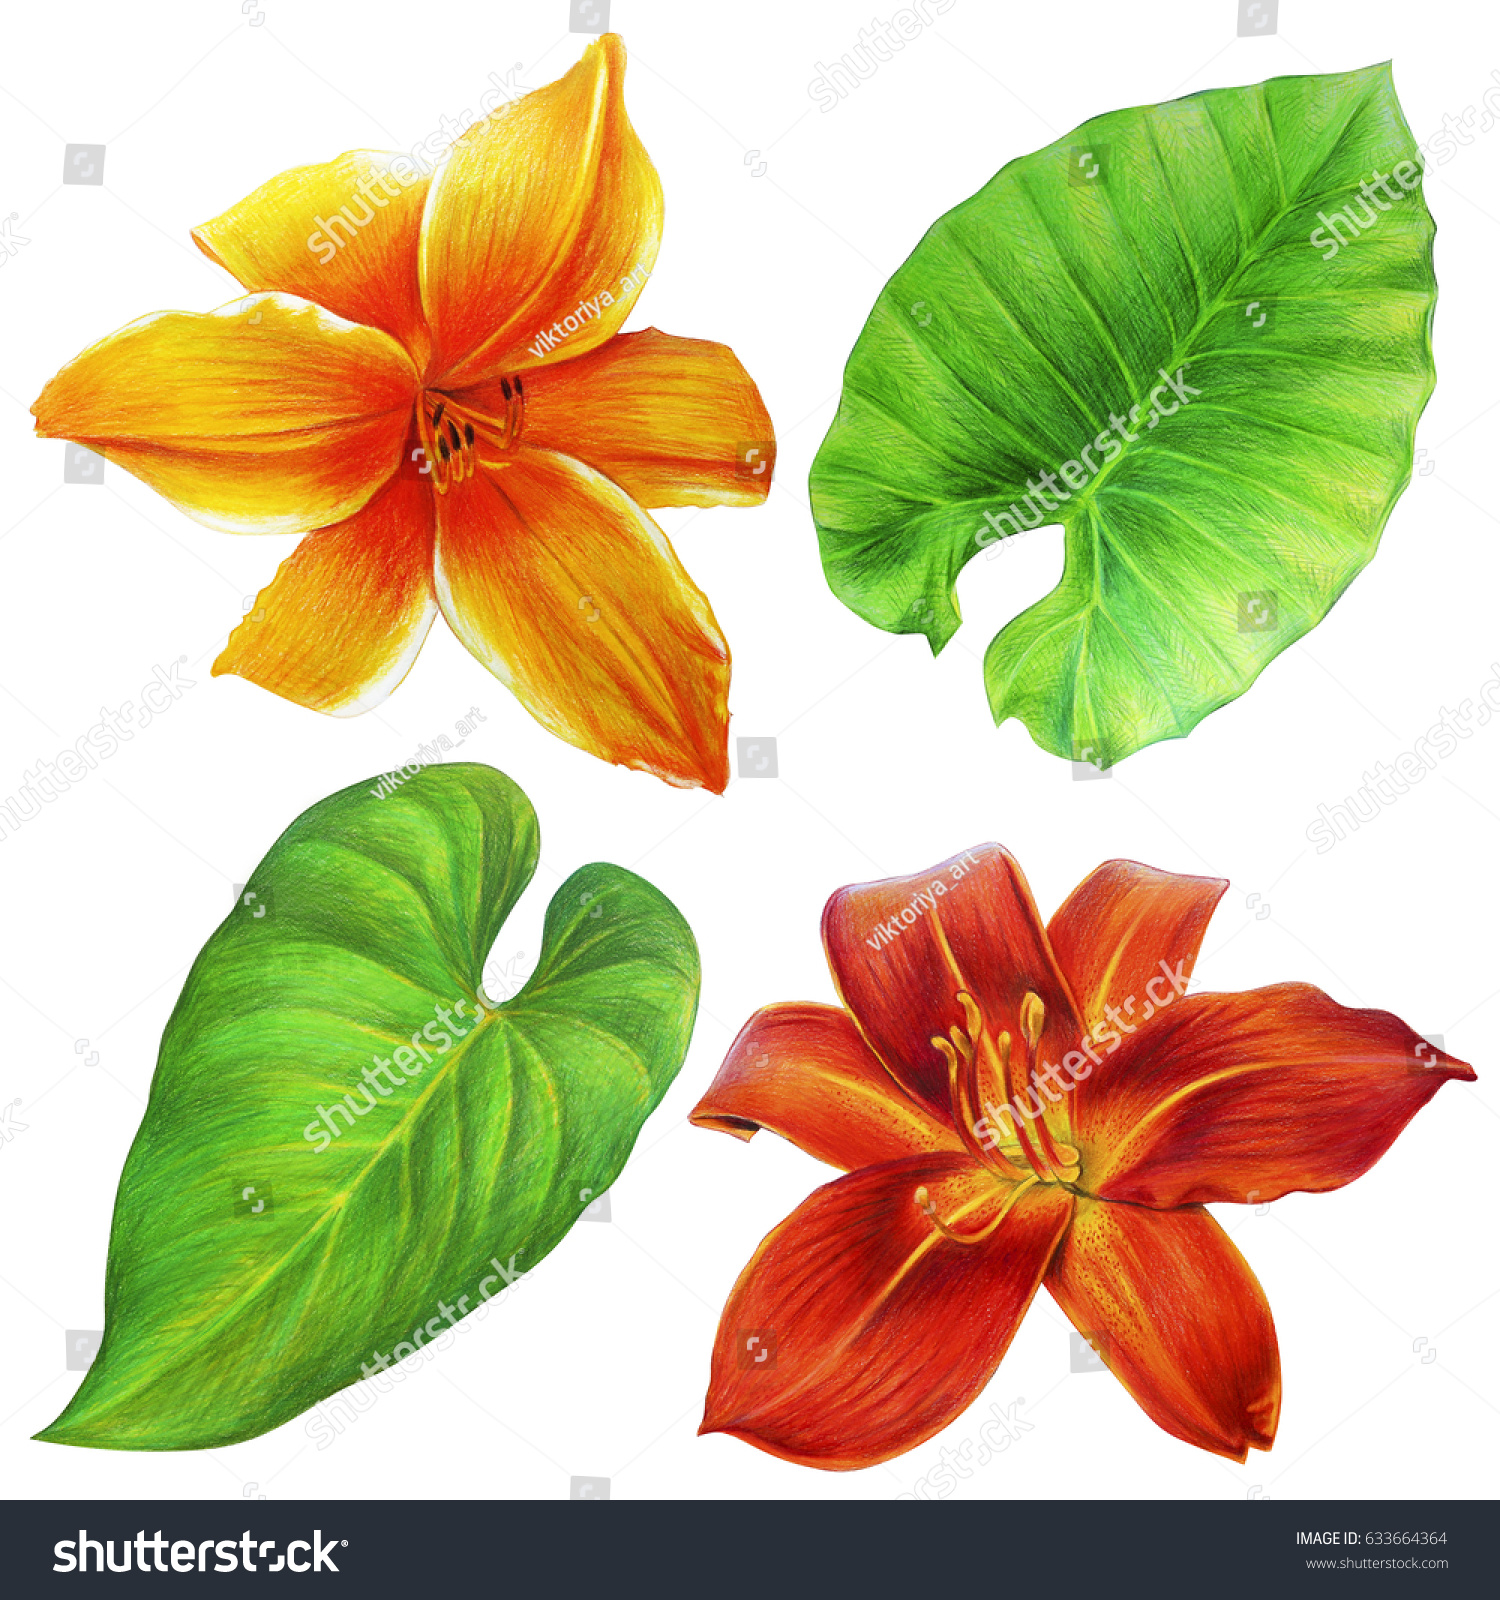 Beautiful exotic flowers leaves drawing daylily stock illustration beautiful exotic flowers and leaves drawing daylily and greenery izmirmasajfo